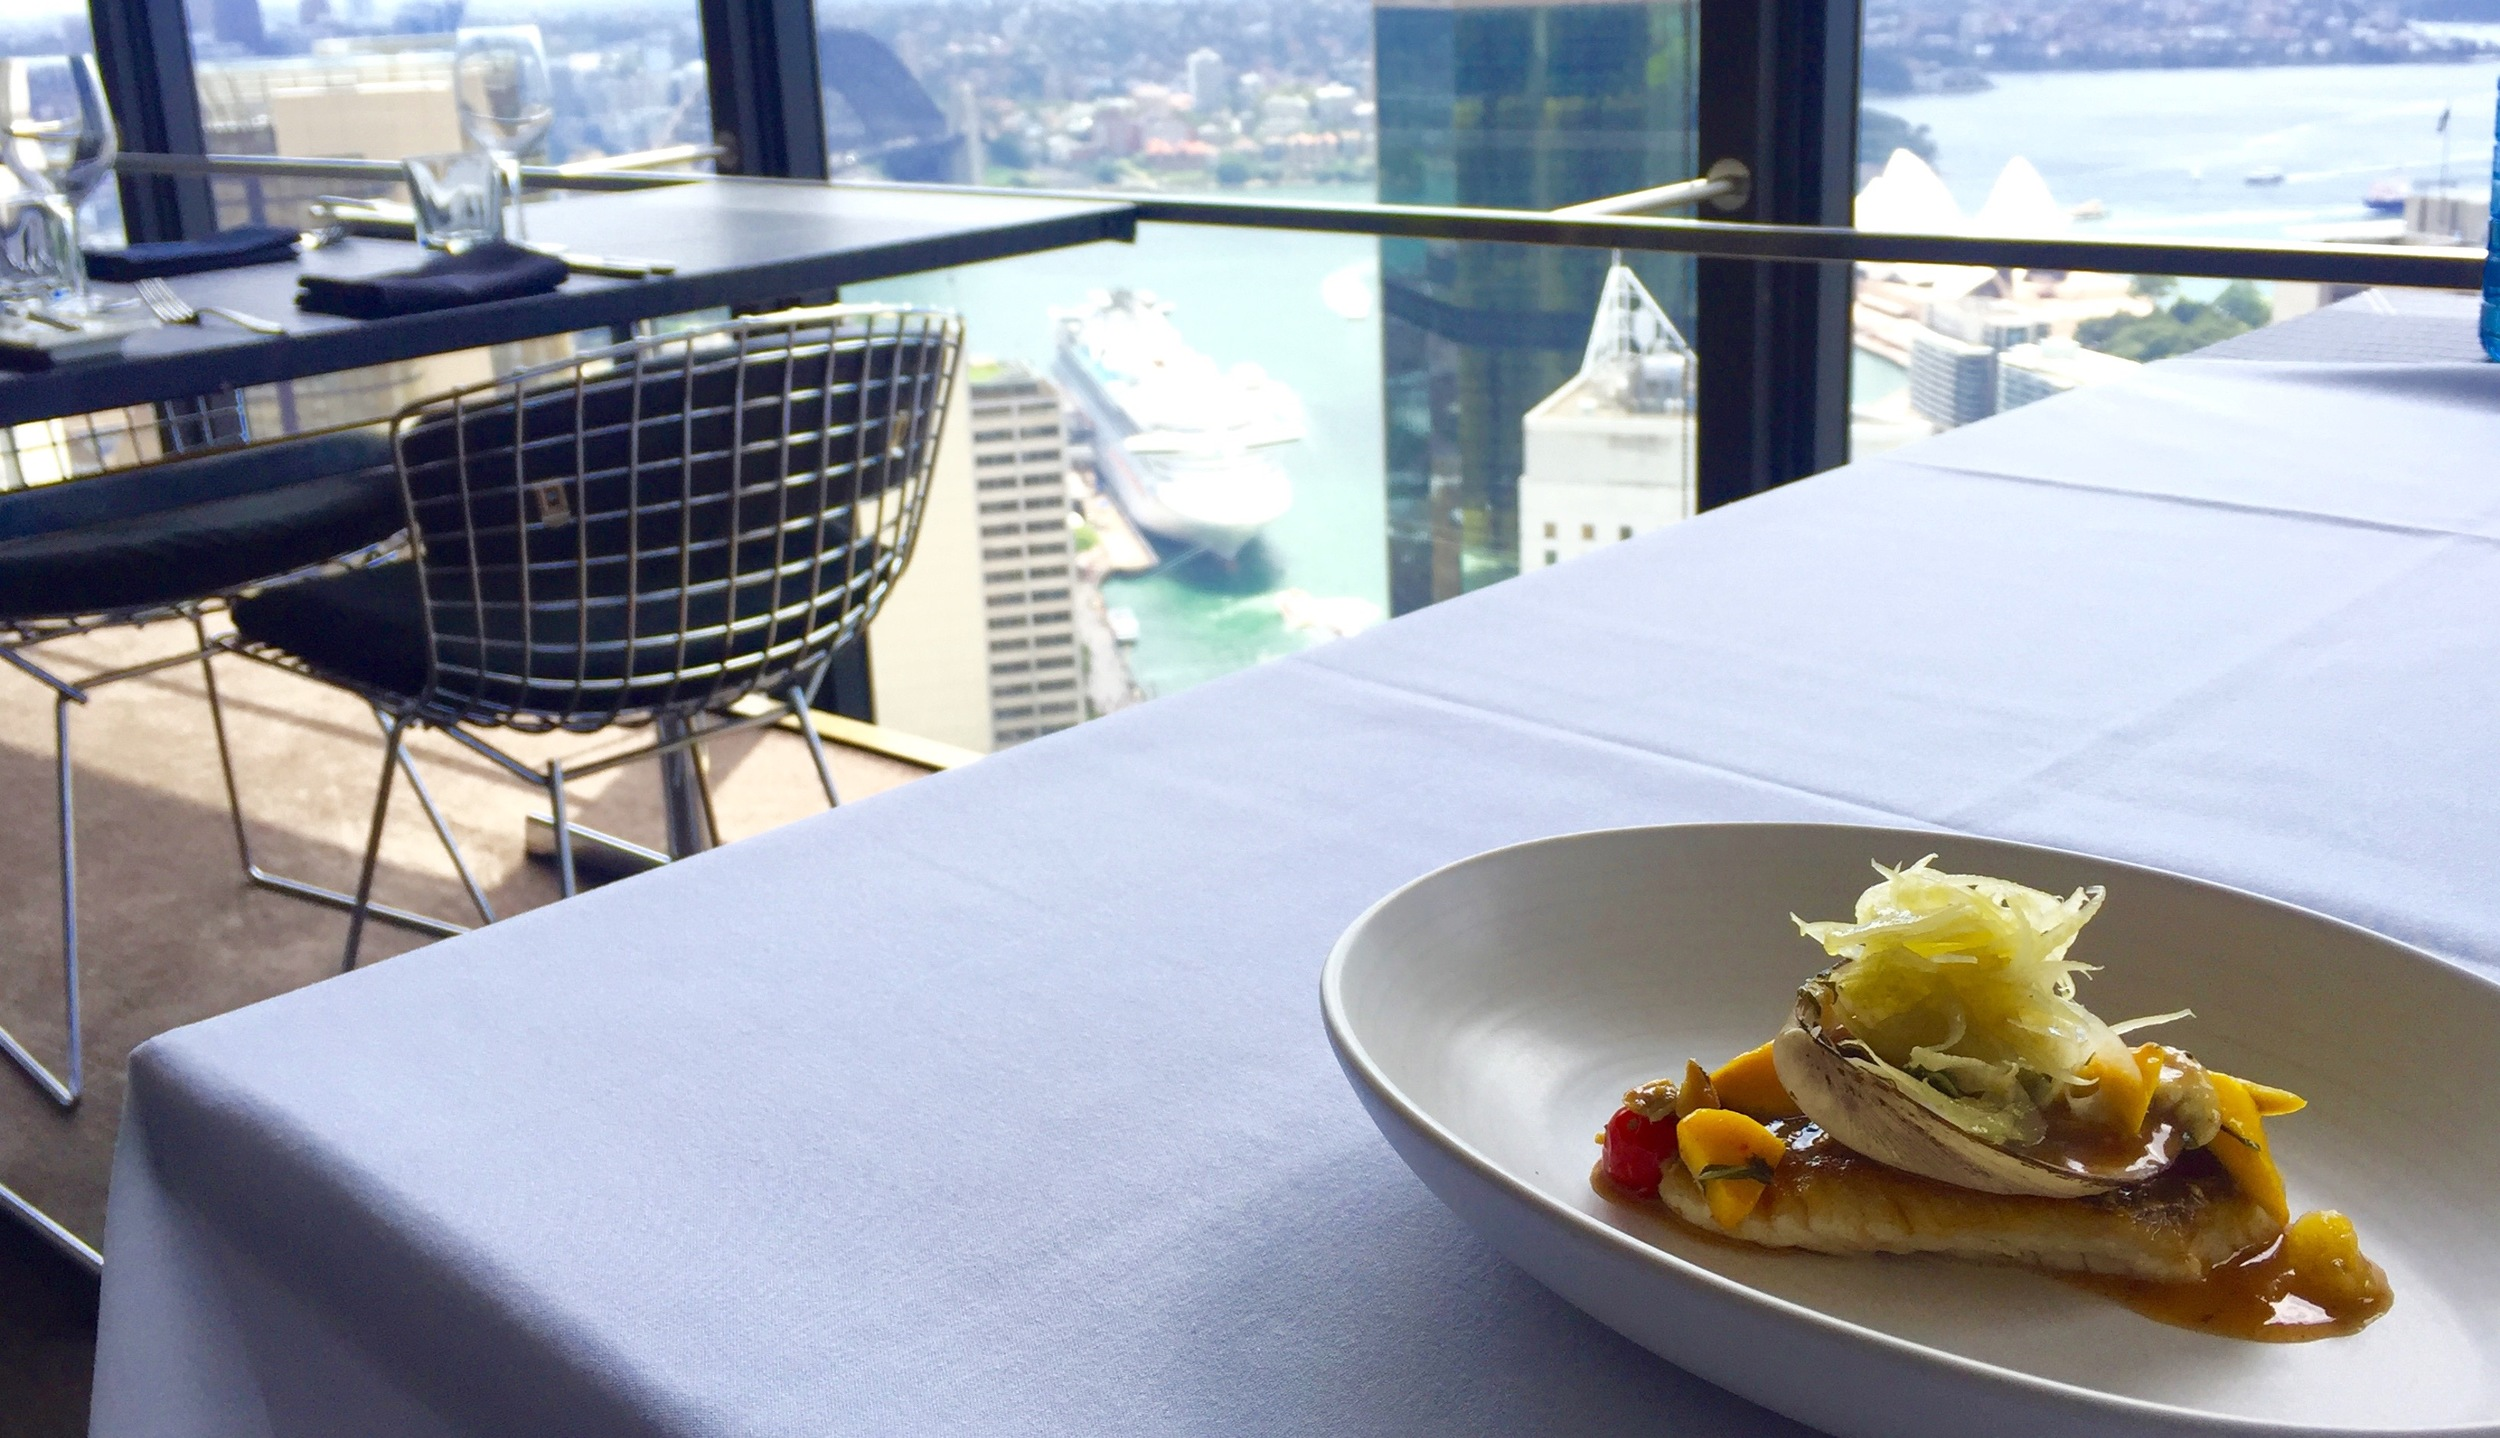 PINK SNAPPER, SMOKED STORM CLAMS, WARM TOMATO ESCHABECHE, SAFFFRON, CHILLI, RED VEIN SORREL WITH THE VIEW.